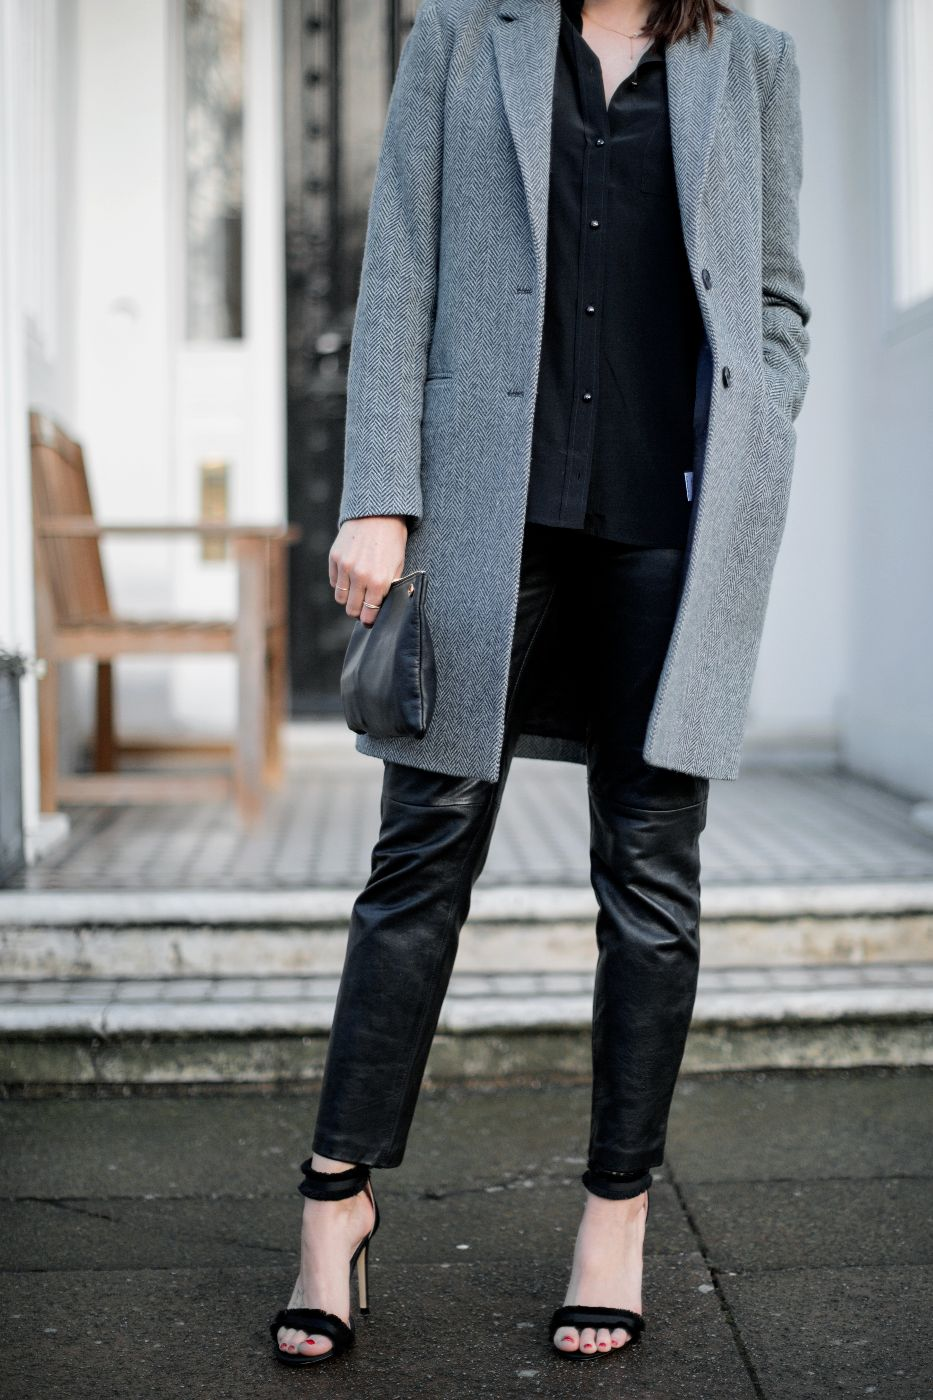 theannaedit-leather-trousers-mango-day-to-night-dressing-fashion-january-2018-10